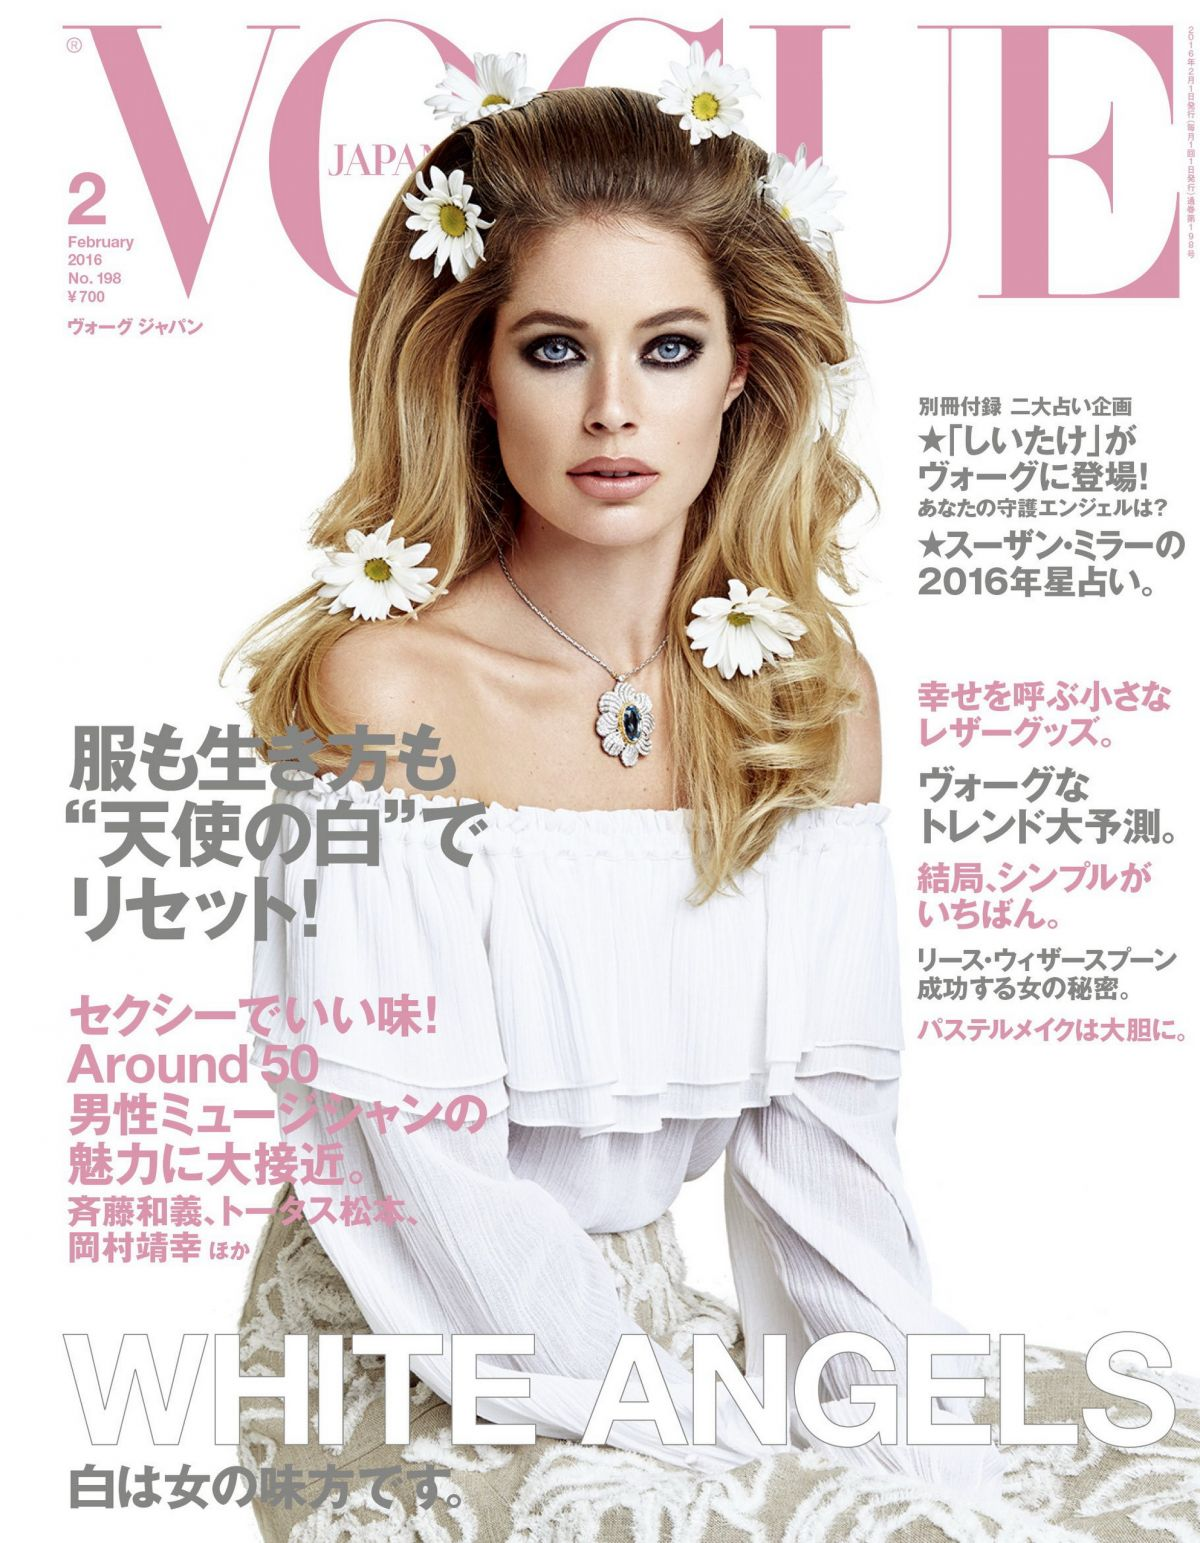 doutzen kroes on the cover of vogue magazine japan january 2016 issue